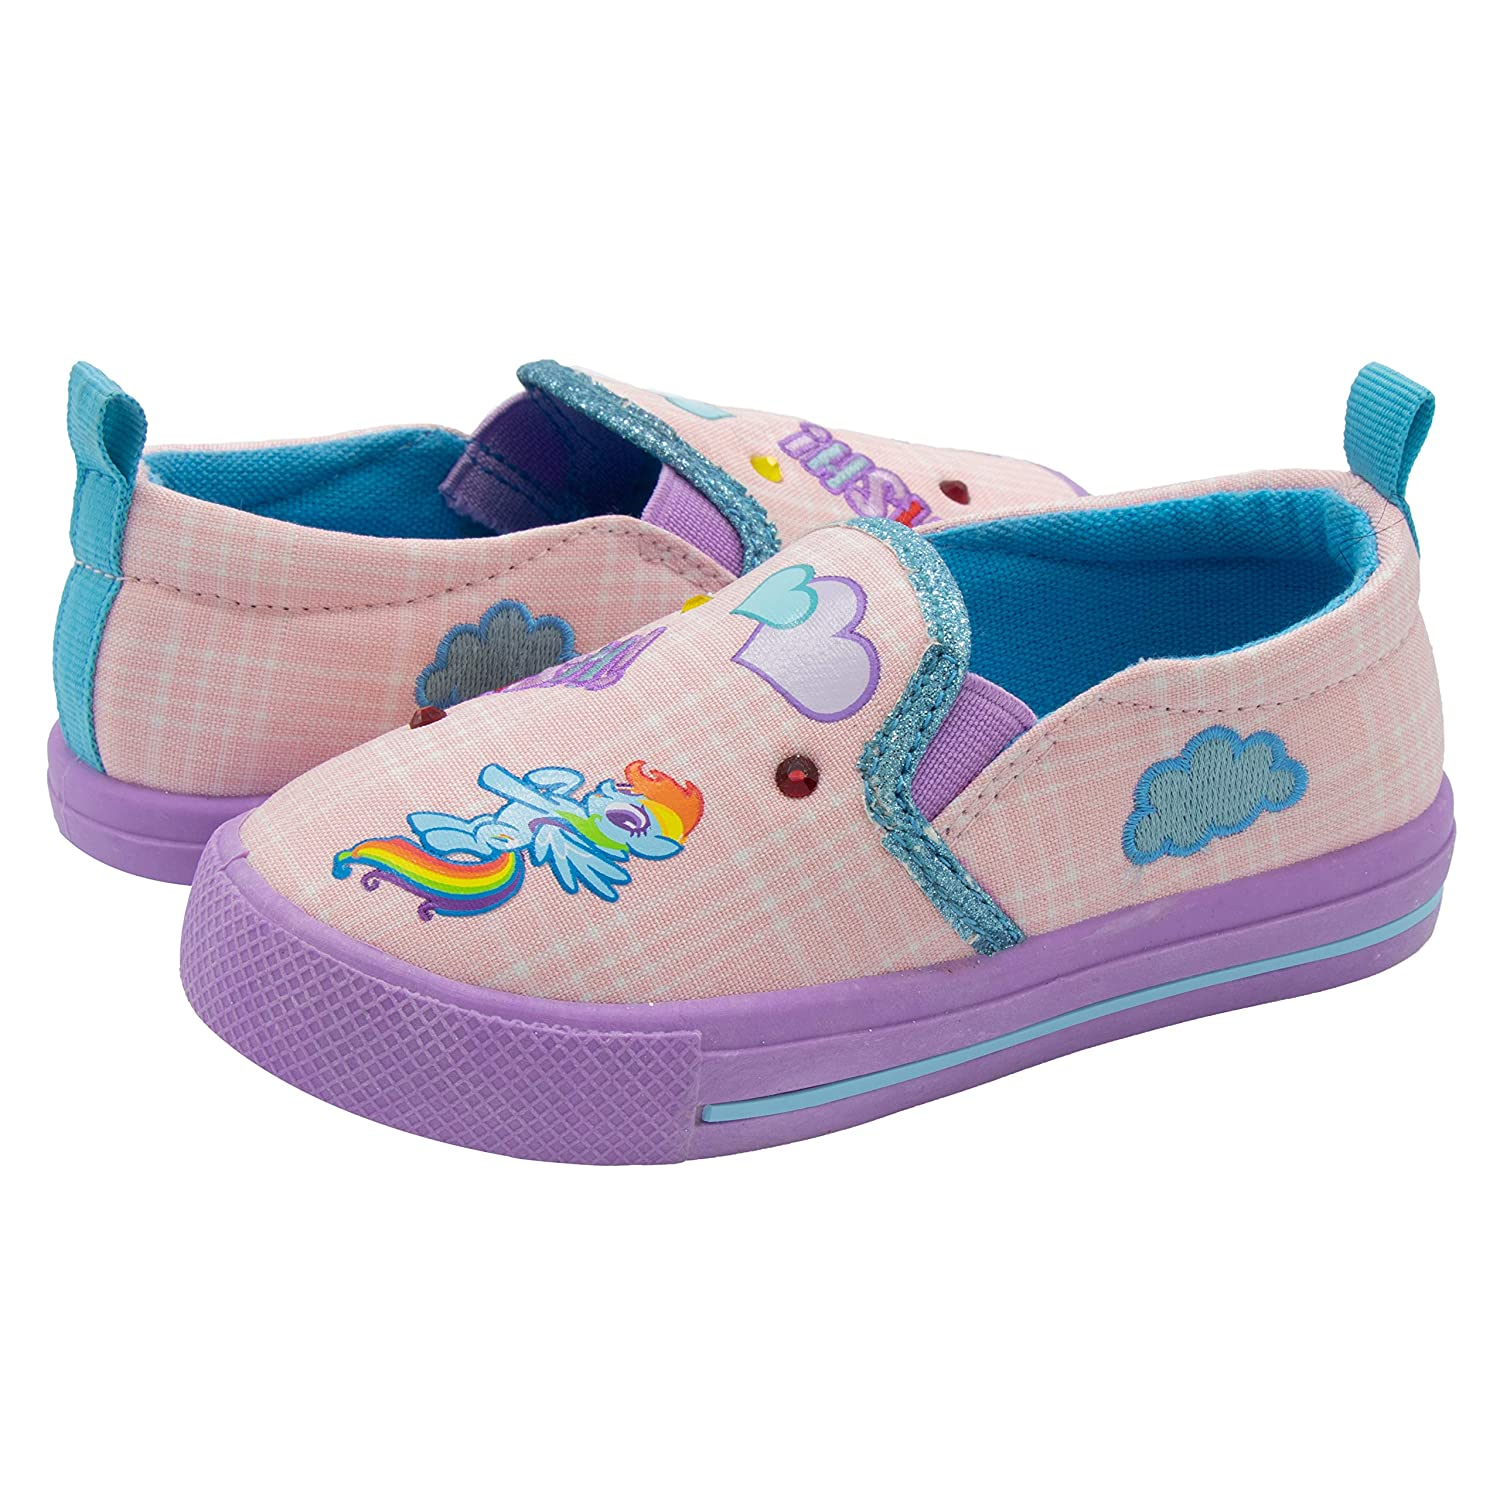 Amazon.com: My Little Pony - Zapatillas para niña con diseño ...